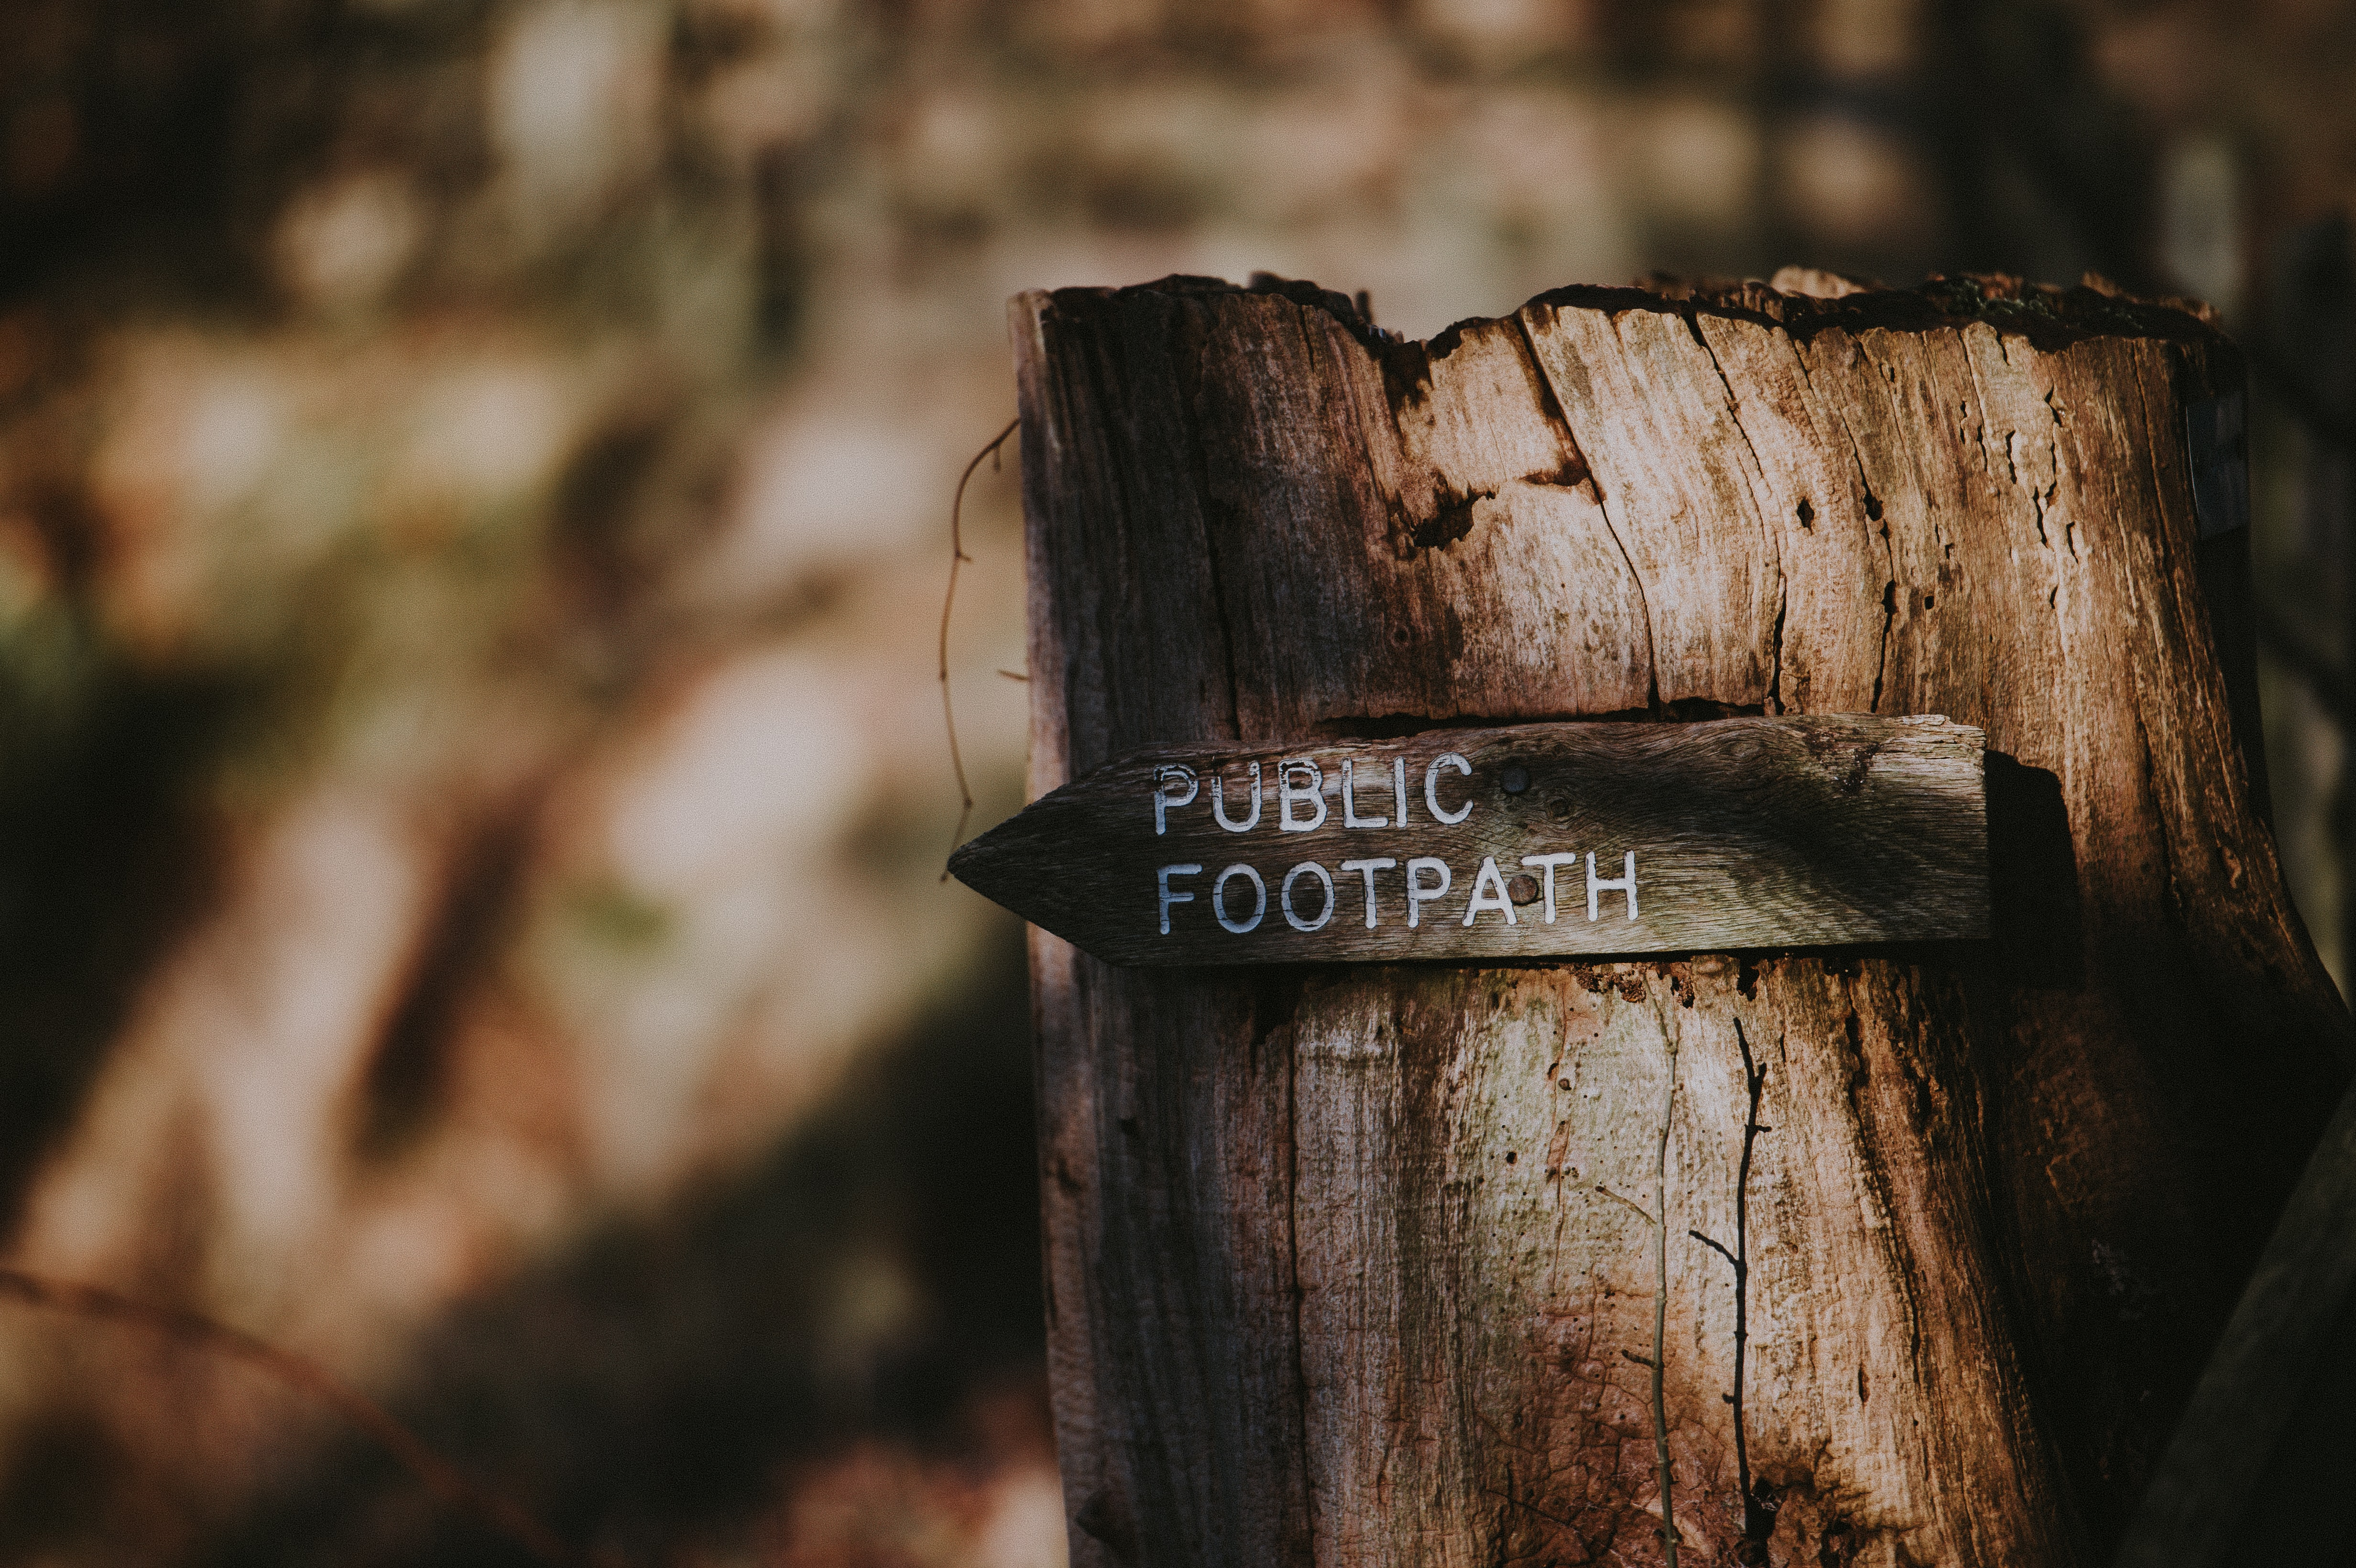 public footpath signage selective focus photography